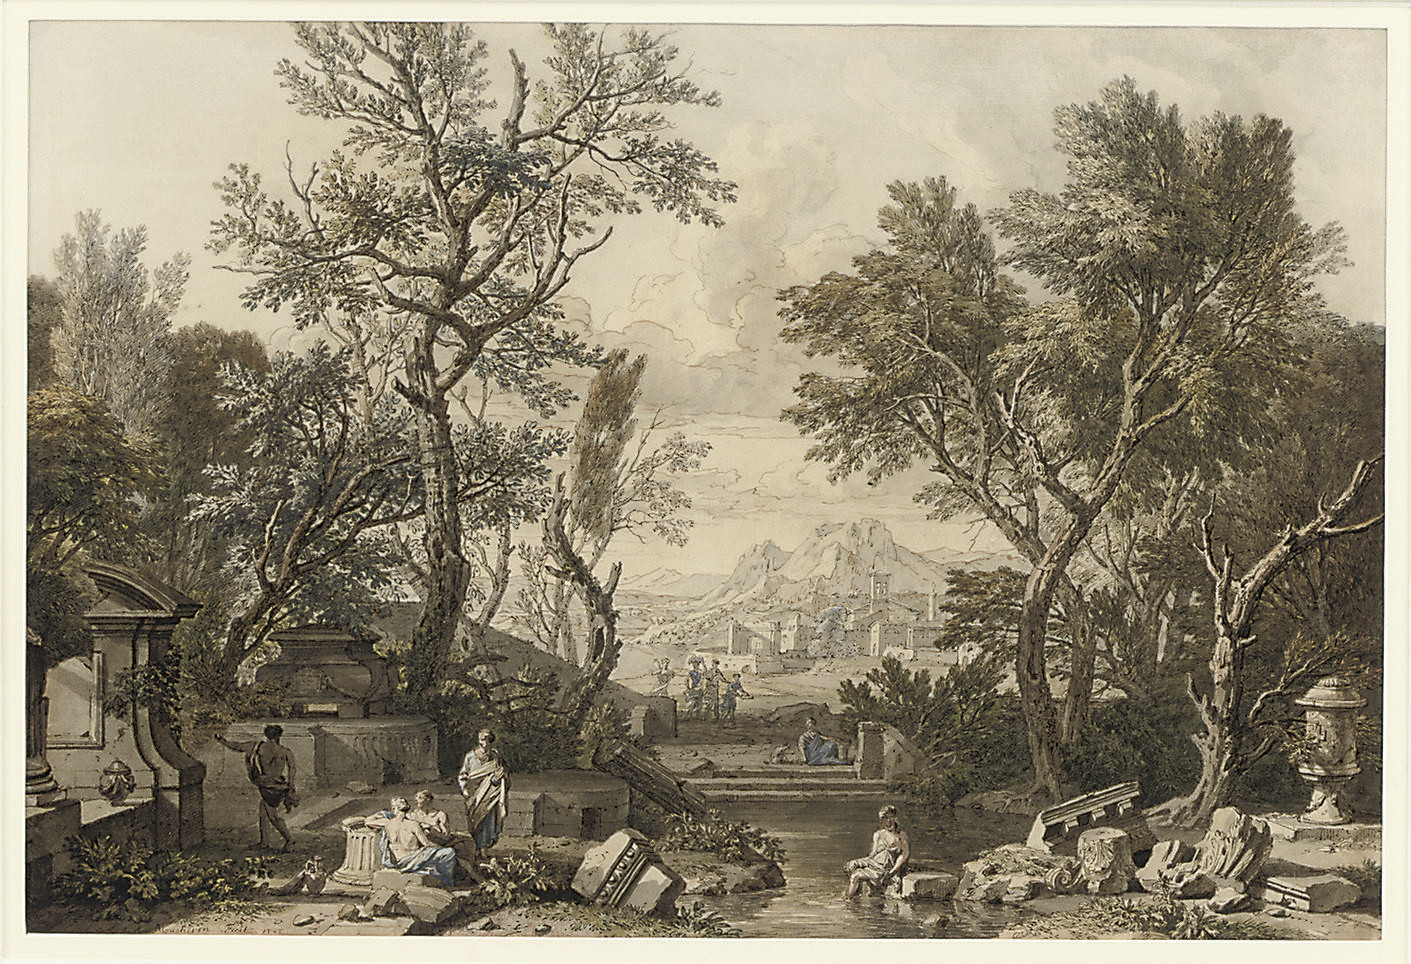 Classical figures amongst ruins in an Arcadian landscape